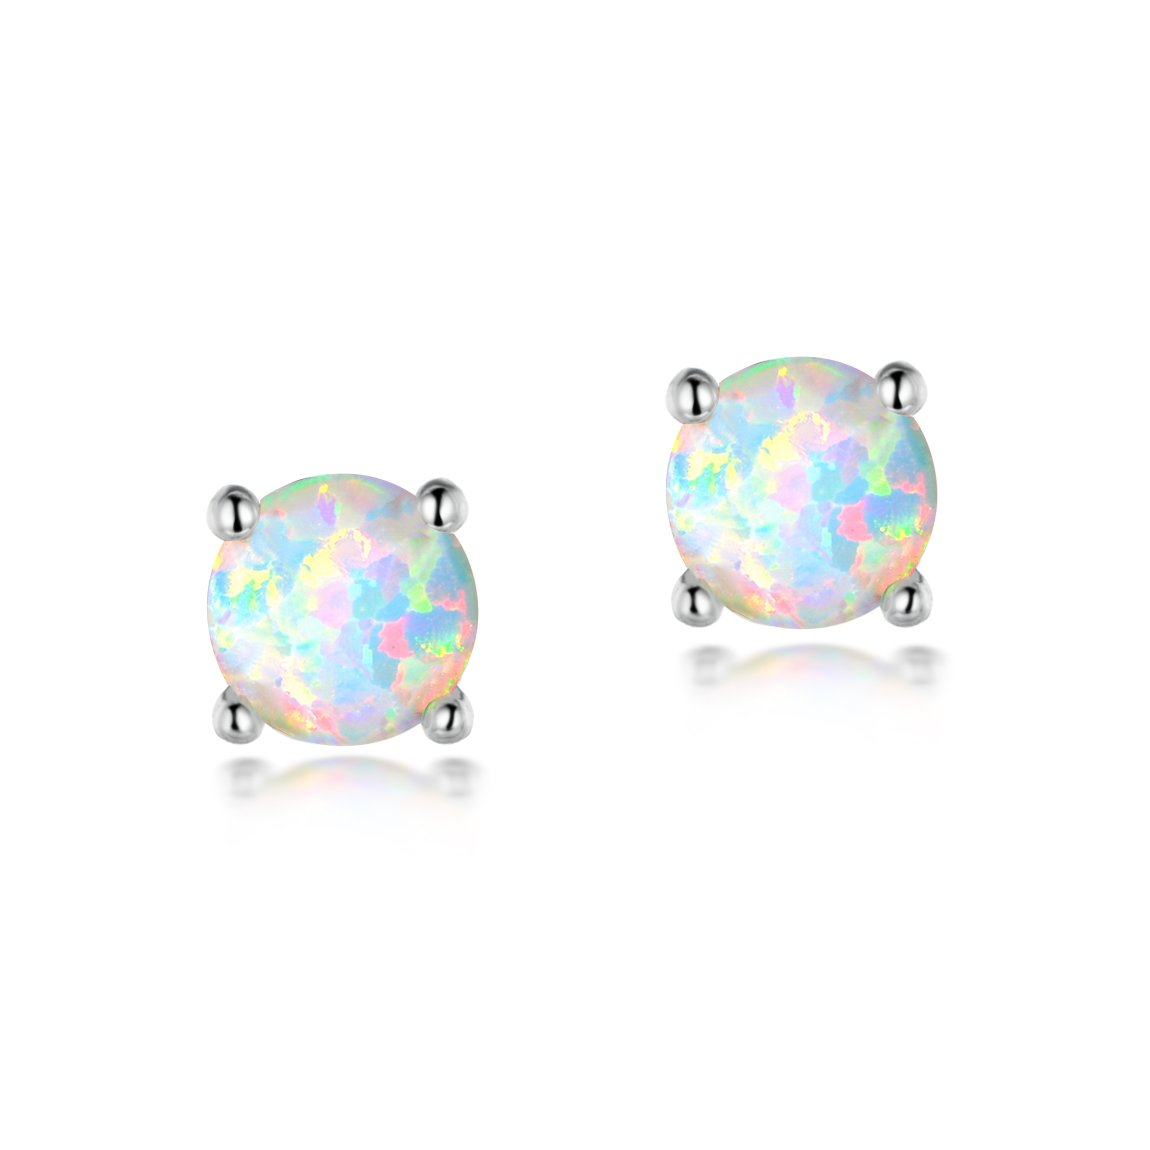 e5580b255 >Lightweight small white fire opal stud earrings for little girls,cute and  sparkle. >4mm round cut Synthetic Lab Created White Opal,4 prongs  setting,very ...